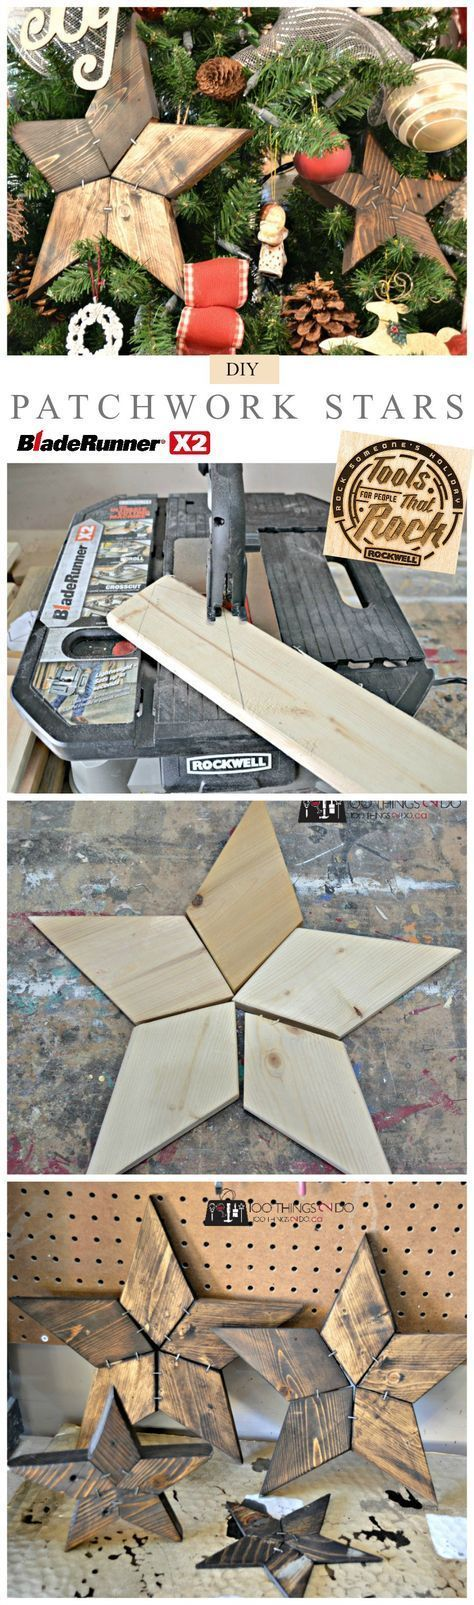 How to make DIY Patchwork Stars using scrap wood and a scroll saw. An easy to make Christmas ornament idea.